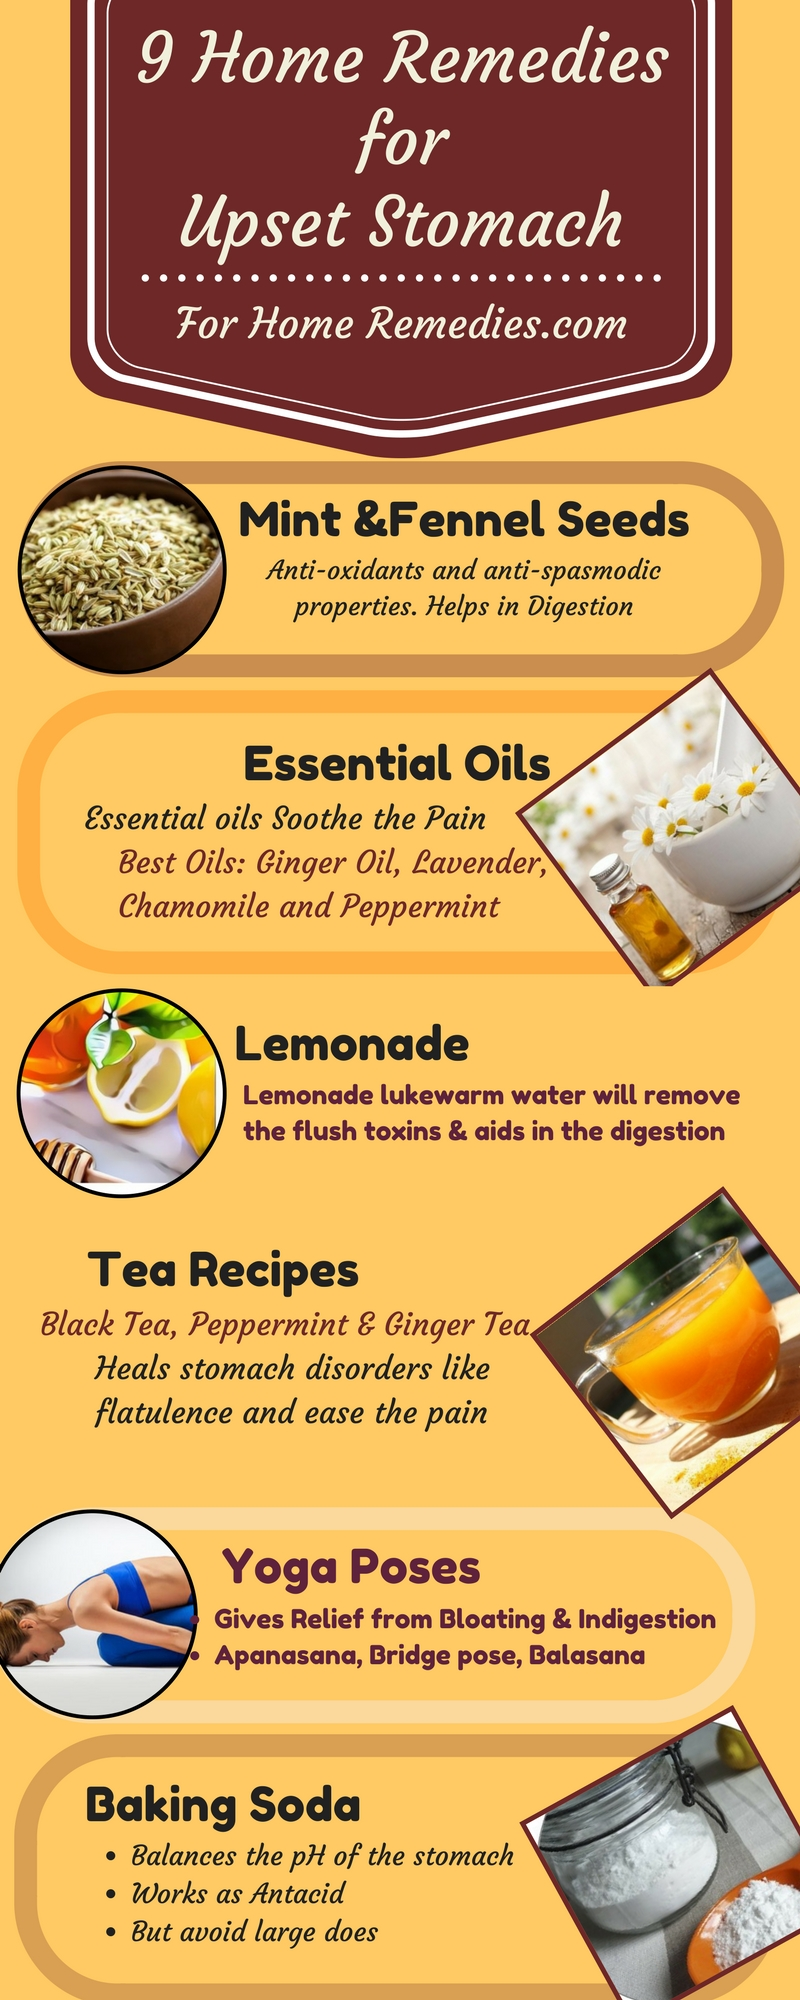 Best Essential Oils From Whole Foods